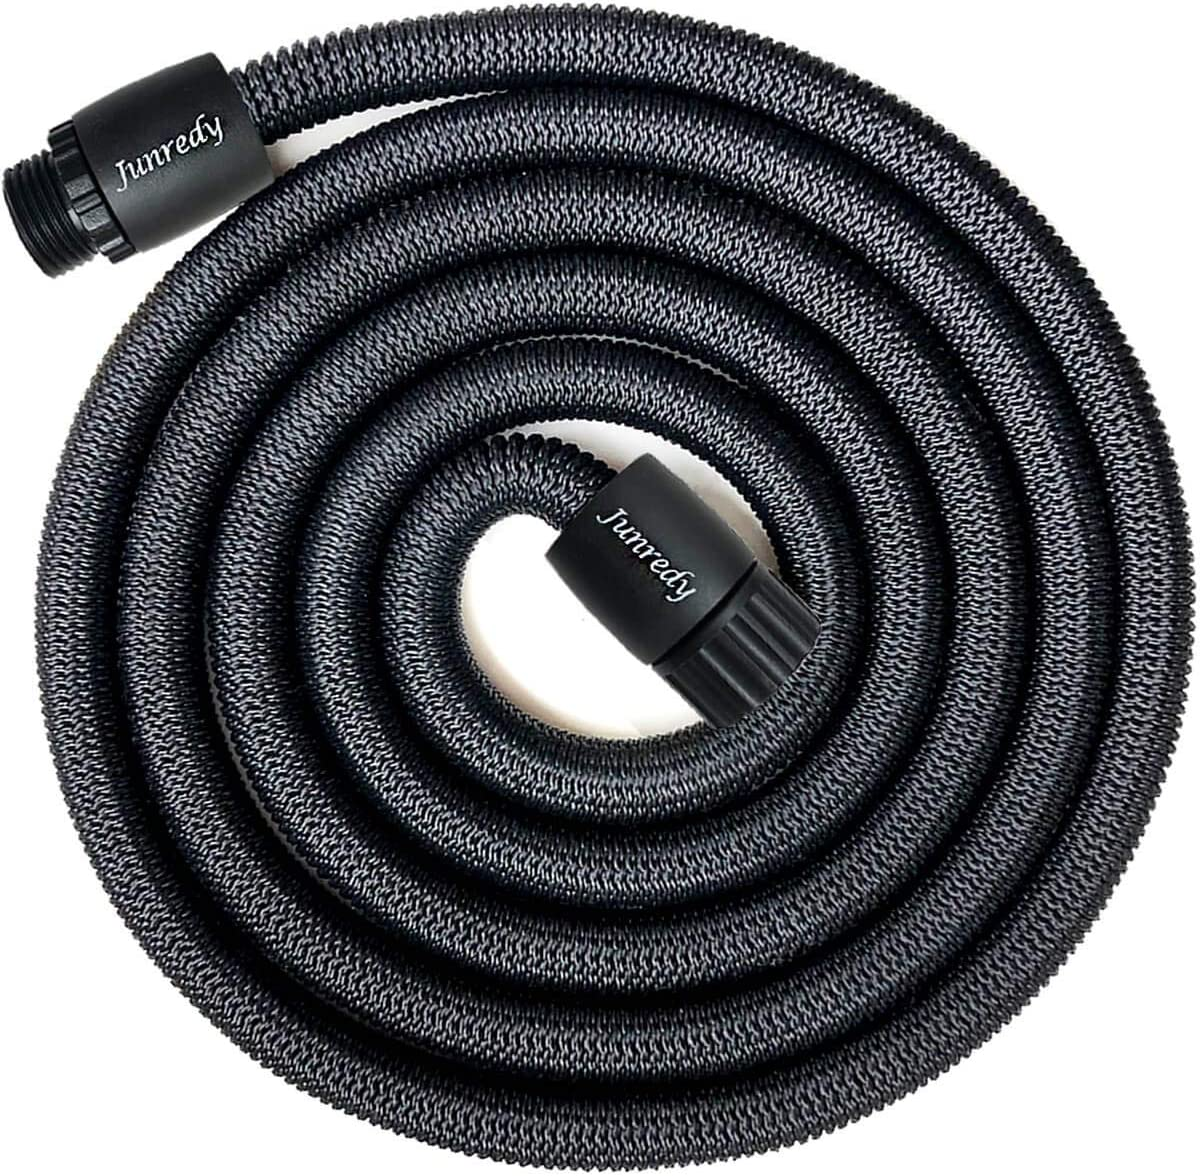 Junredy 25ft Water Hose, Expandable Garden Hose, Flexible Expanding Pressure Water Hose, 3-Layers Latex Core, Extra Strength Fabric,for Your Watering Needs (Black)